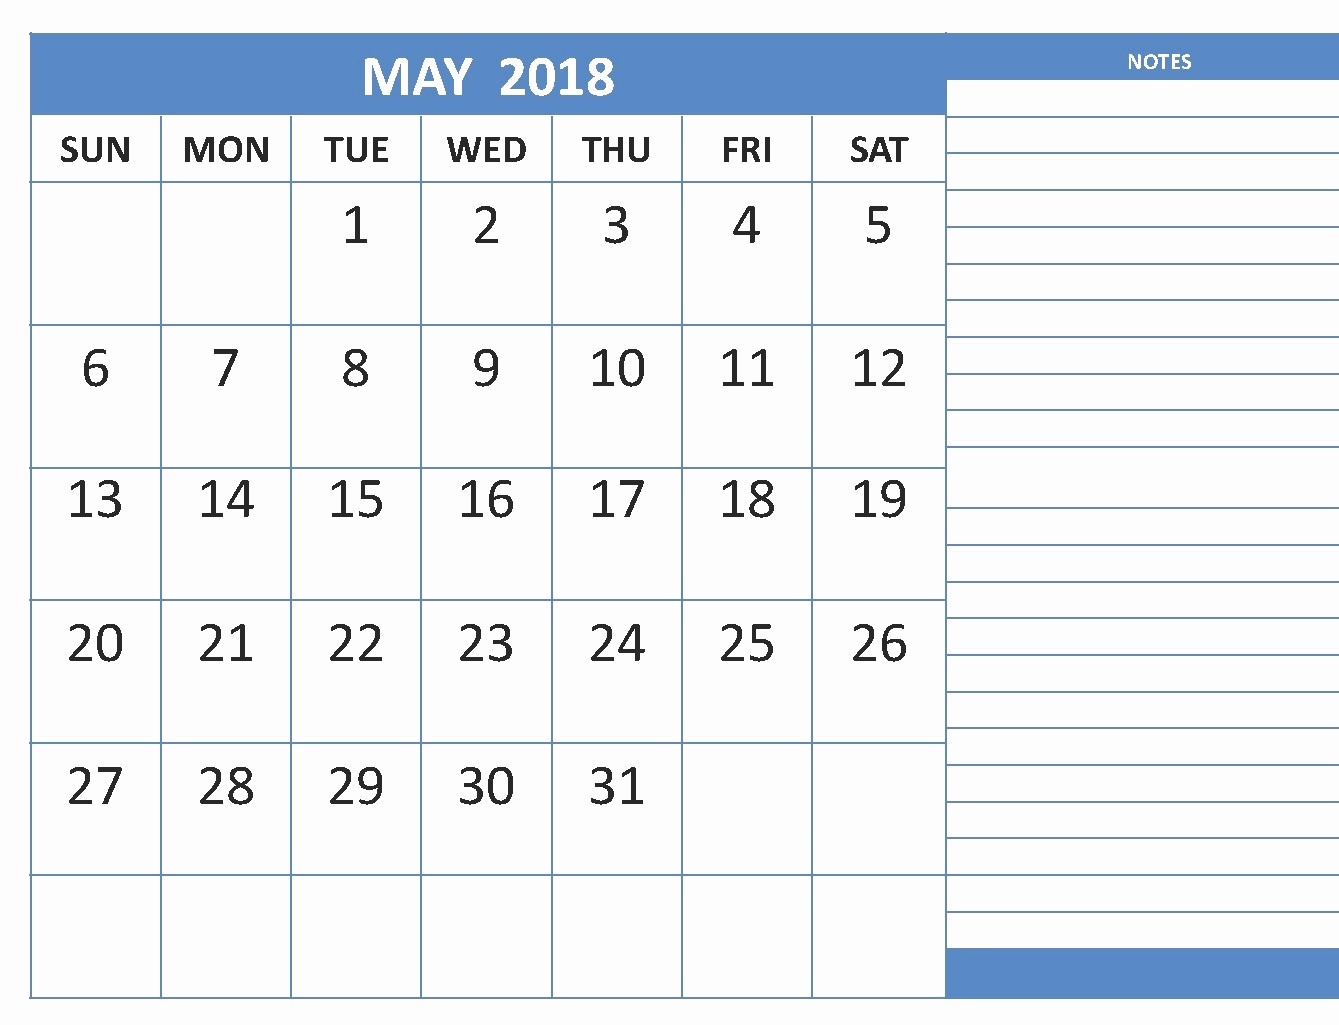 Free May 2018 Calendar Template Lovely Editable May 2018 Calendar